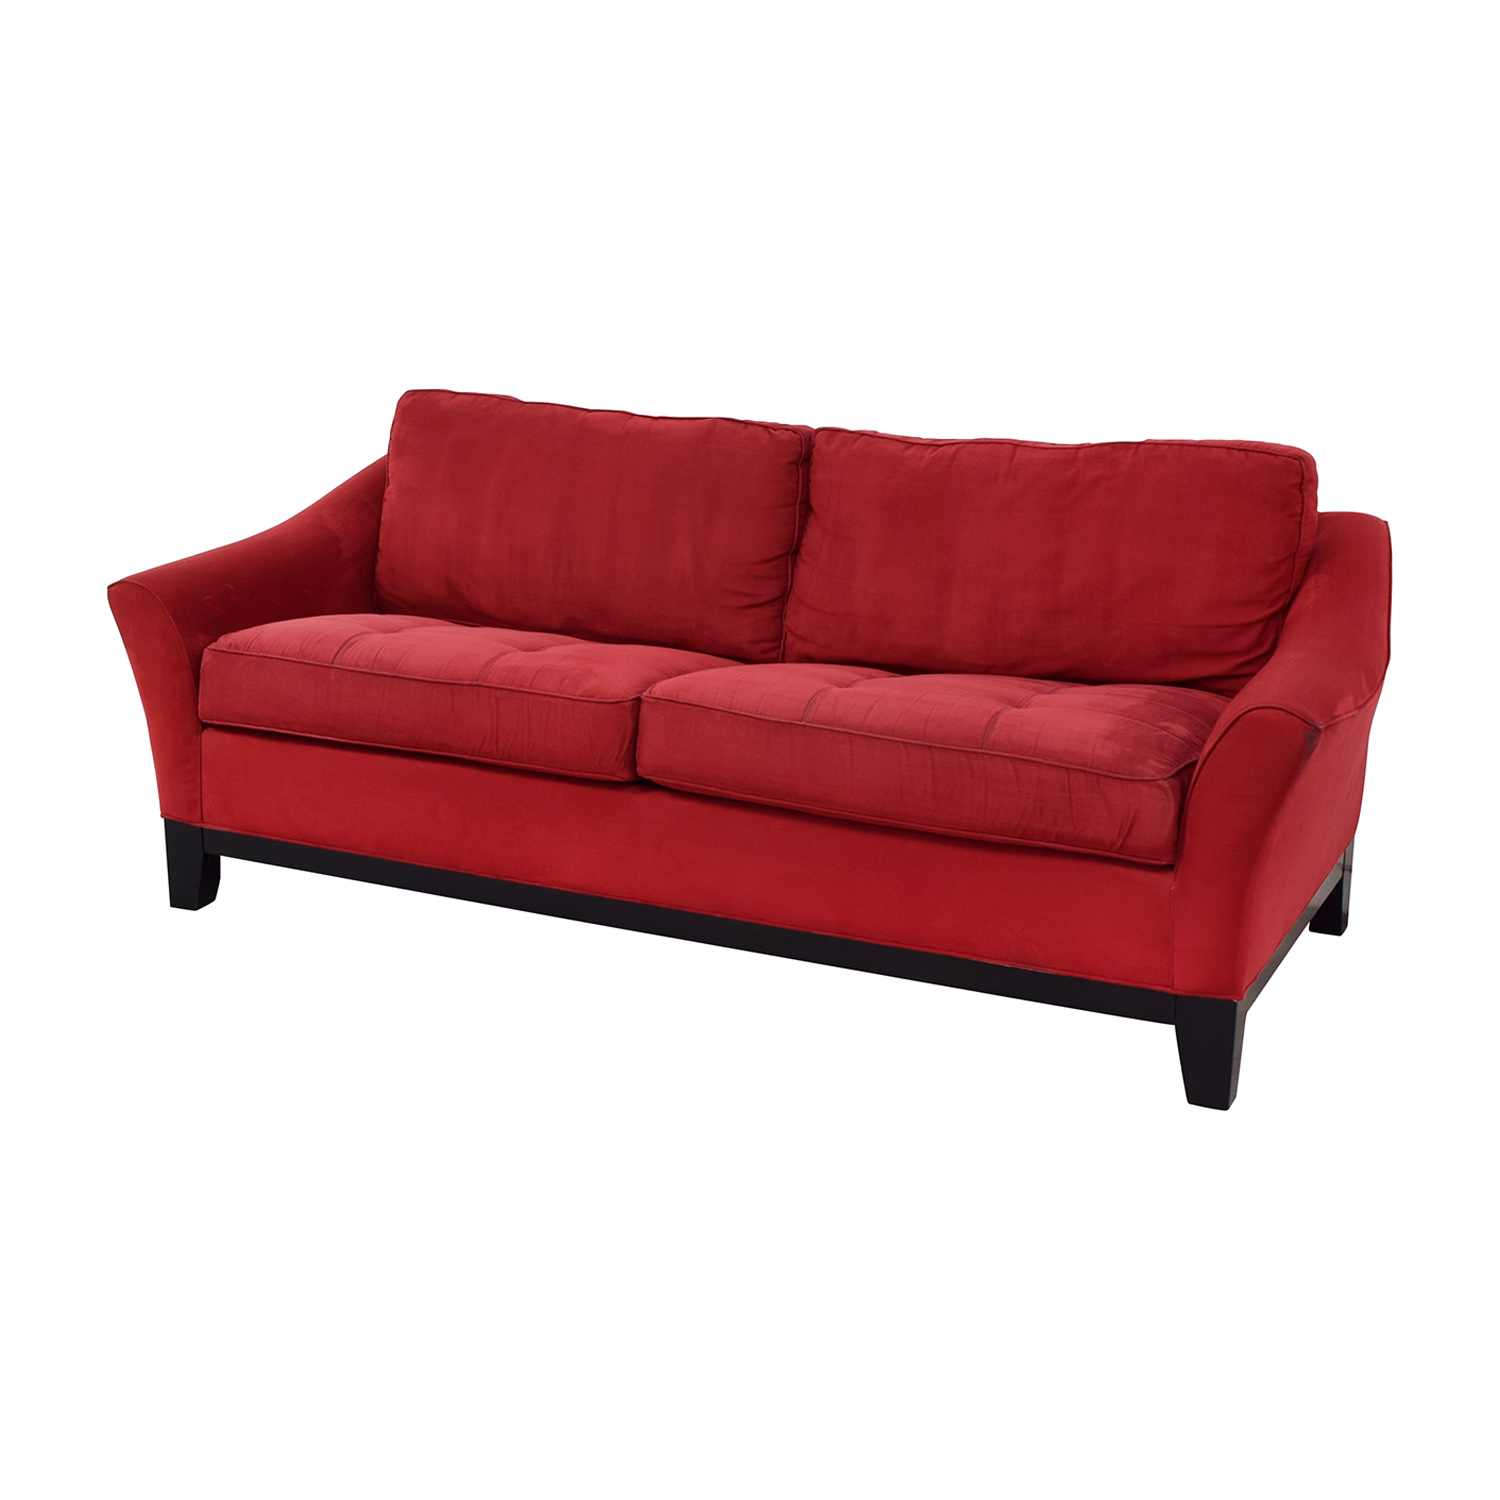 Raymour & Flanigan Raymour & Flanigan Red Sleeper Sofa